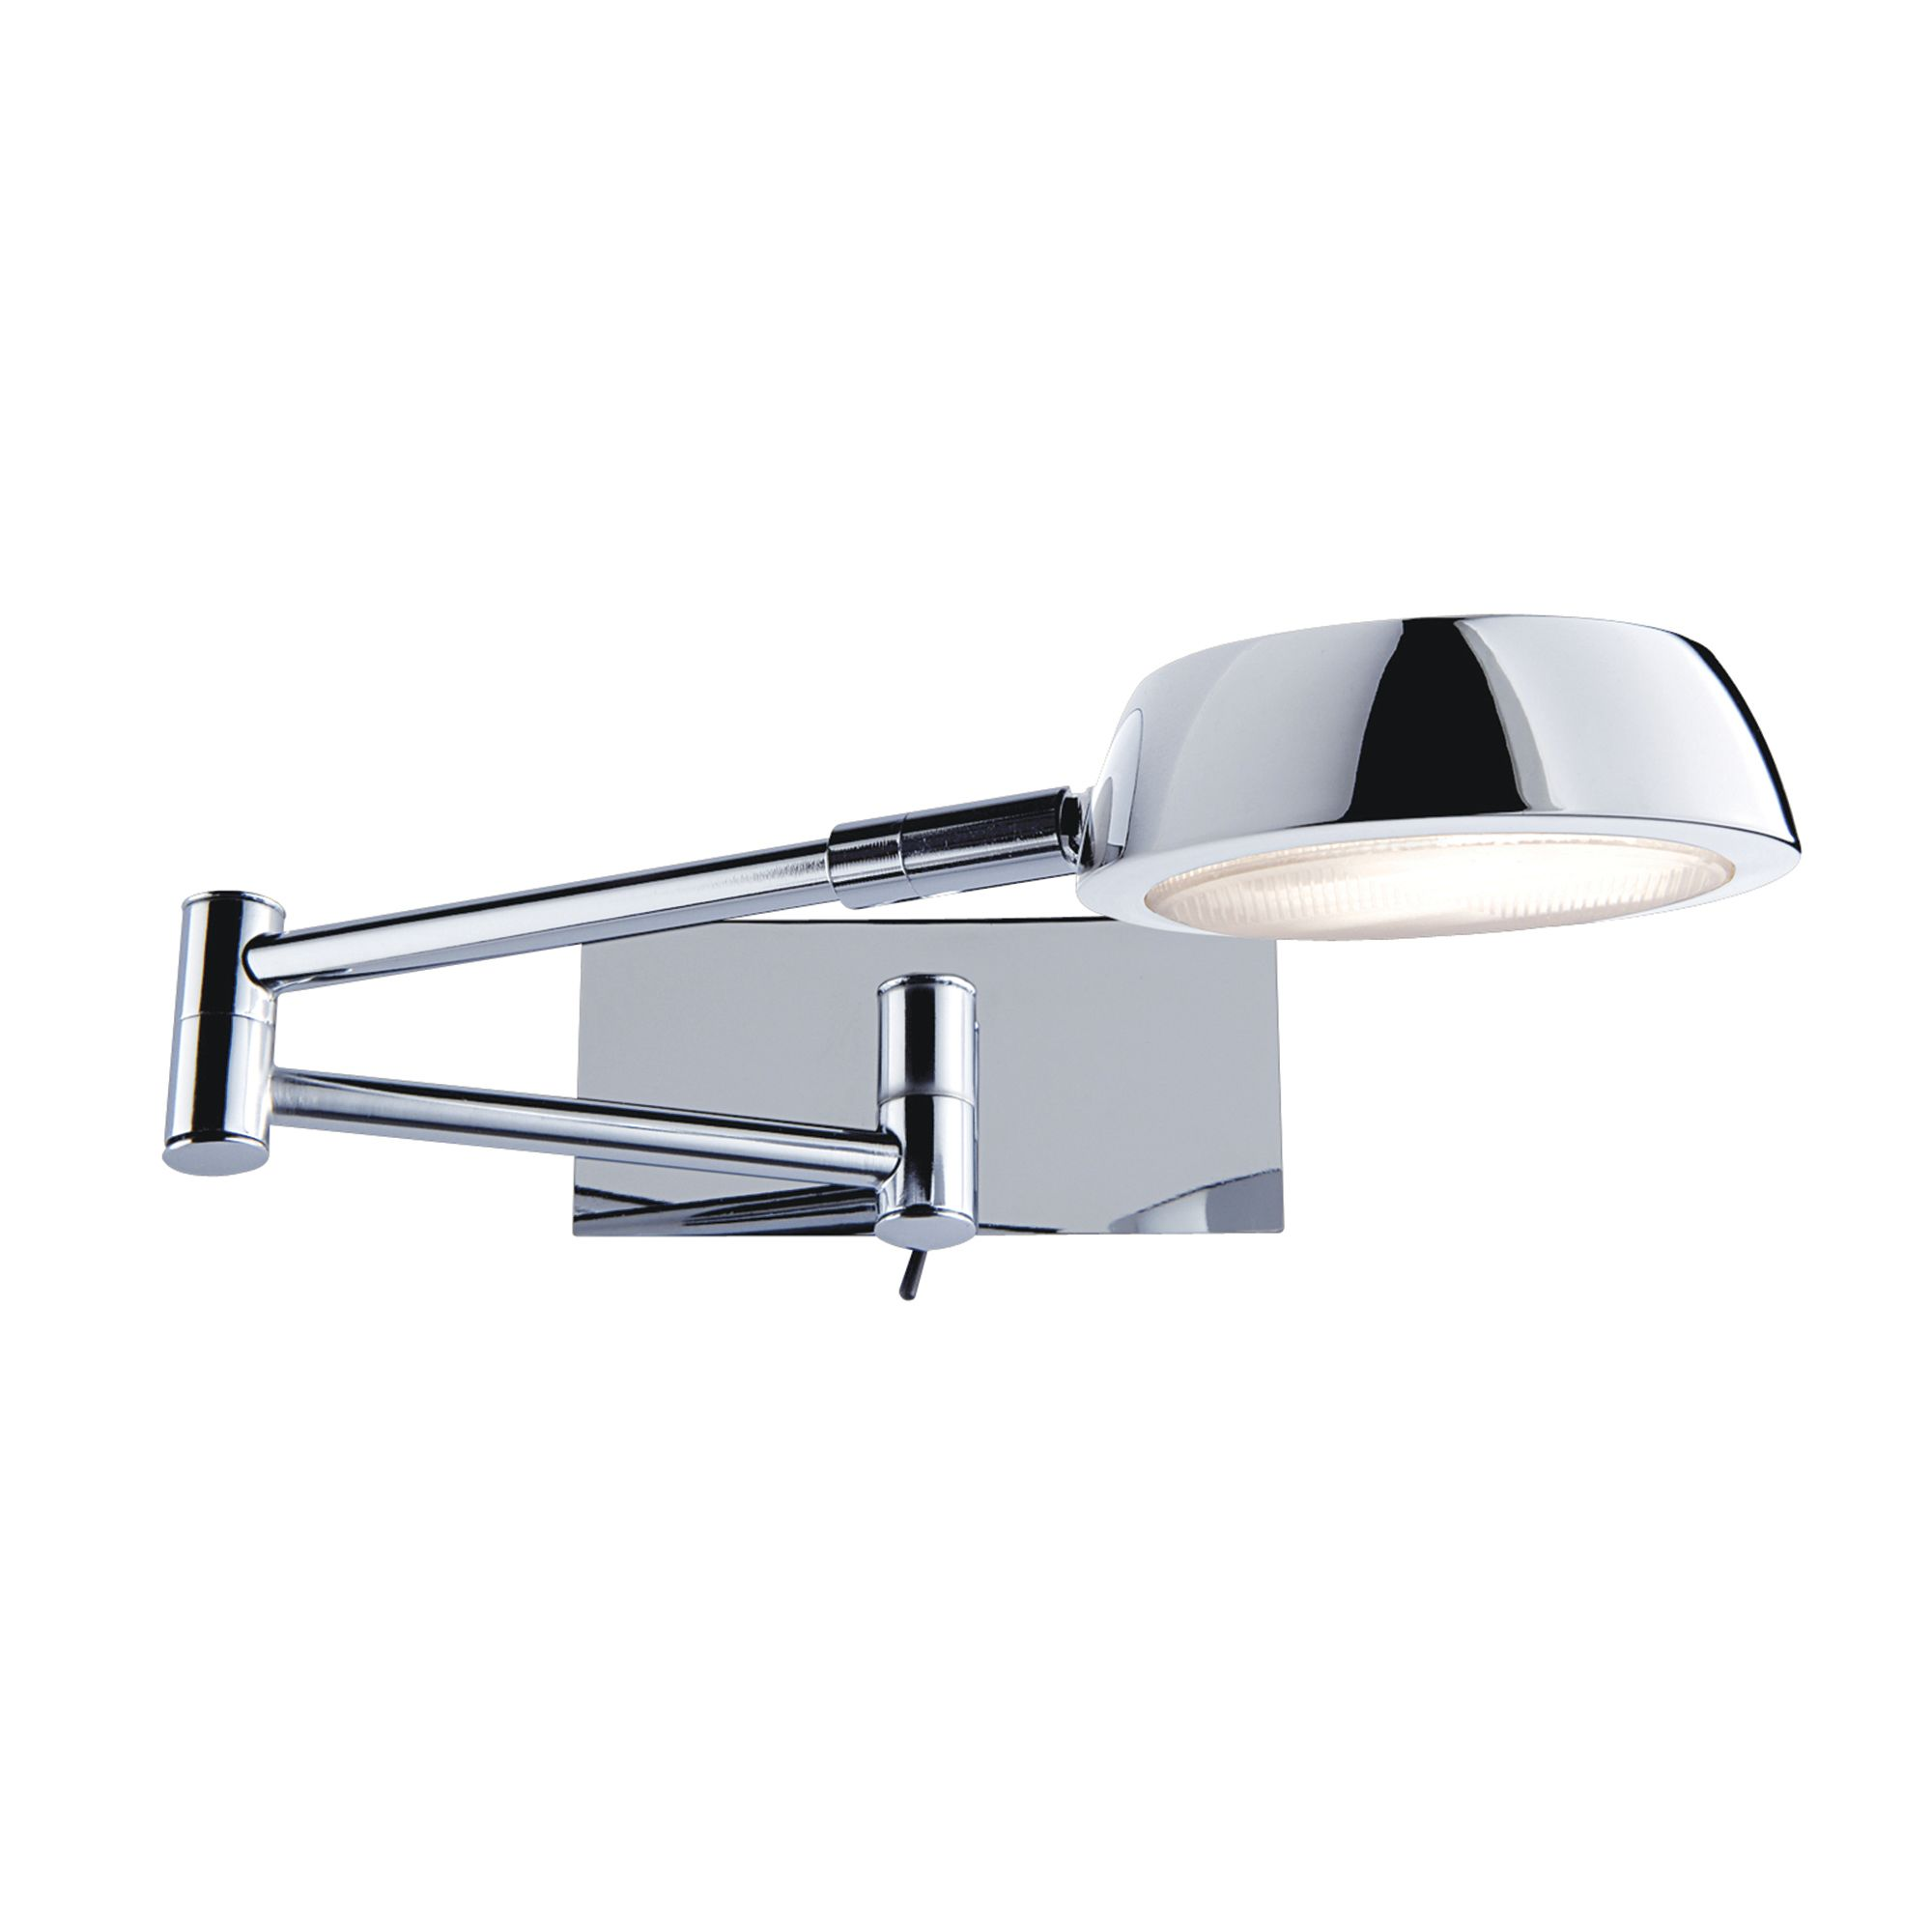 Searchlight Wall Adjustable Arms fali lámpa